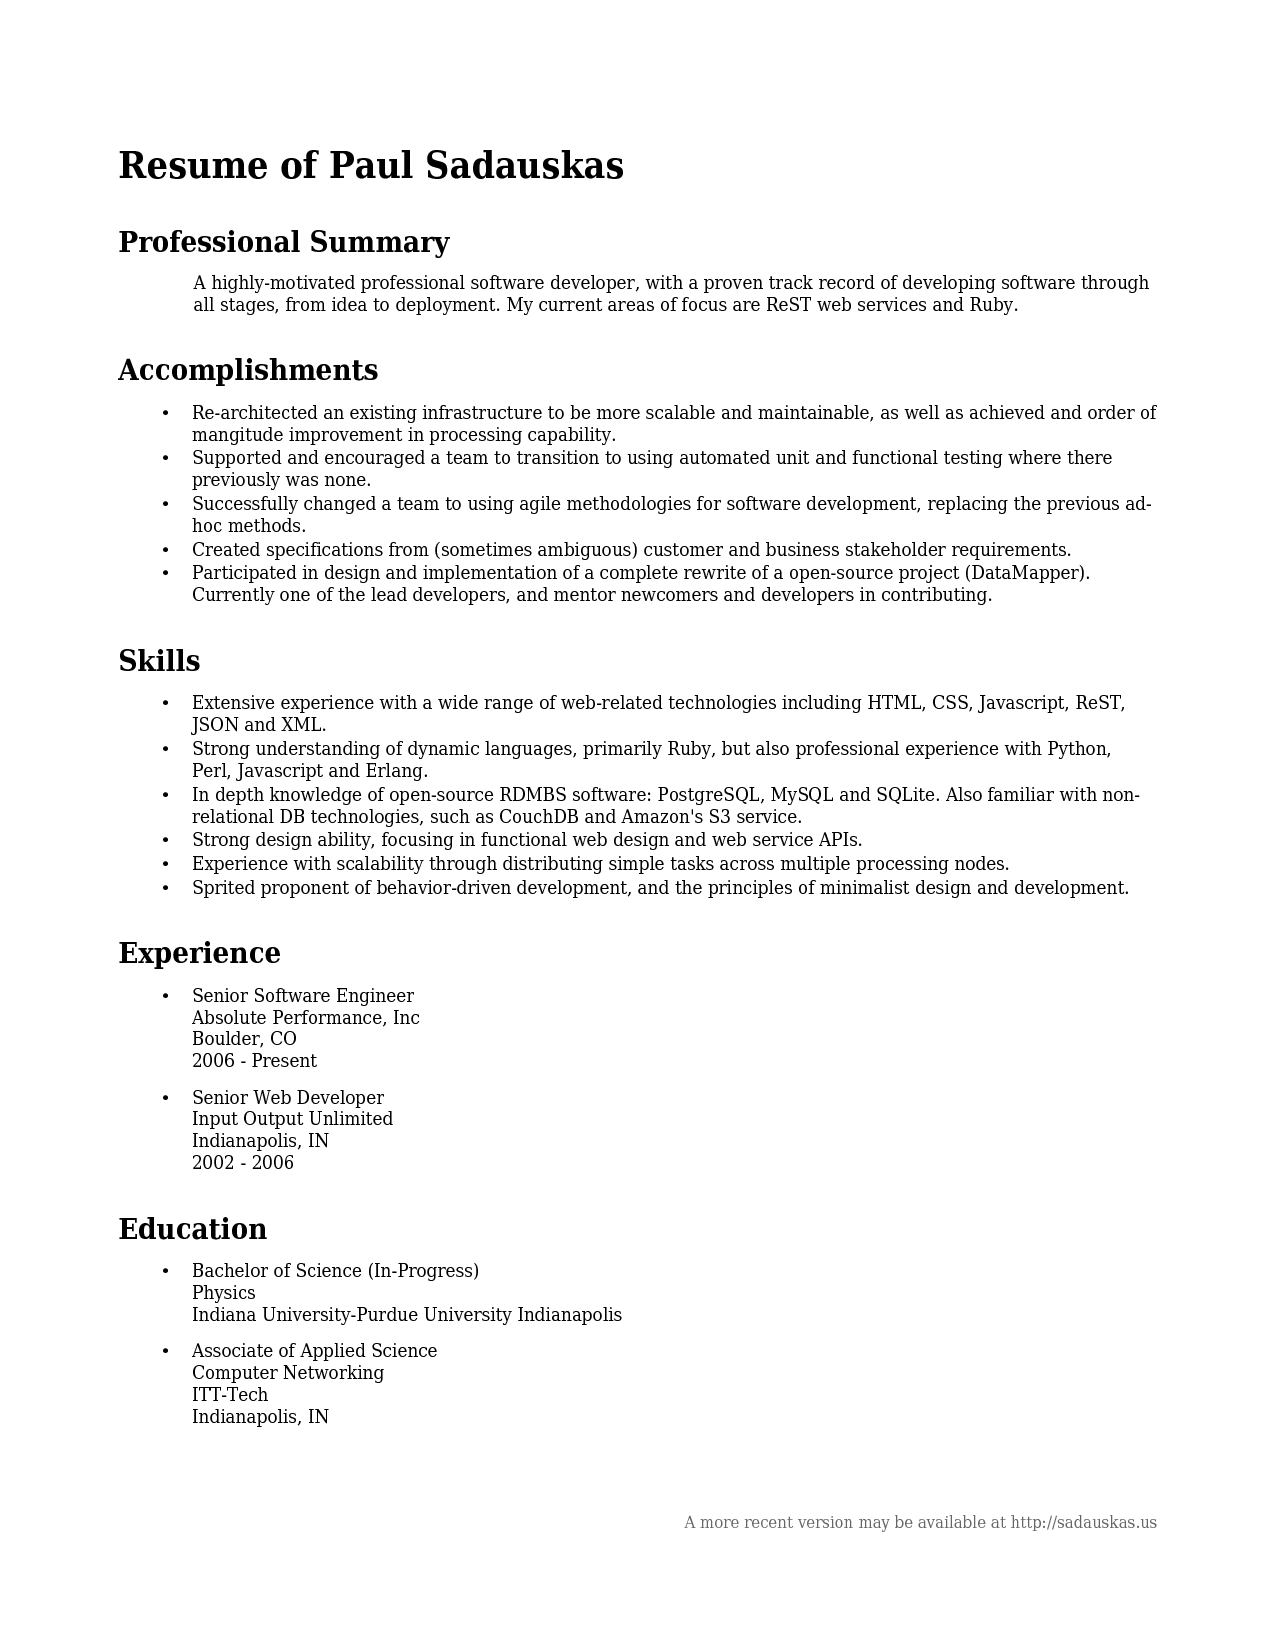 Professional Resume Summary 2016  Samplebusinessresume. Exemple De Curriculum Vitae Technicien De Laboratoire. Resume Examples Yahoo. Curriculum Vitae Modelo Joven. Cover Letter Job Abroad Sample. Resume Khac Cv. Lebenslauf Englisch Personal Profile. Resume Computer Definition. Resume Writing Services Hong Kong